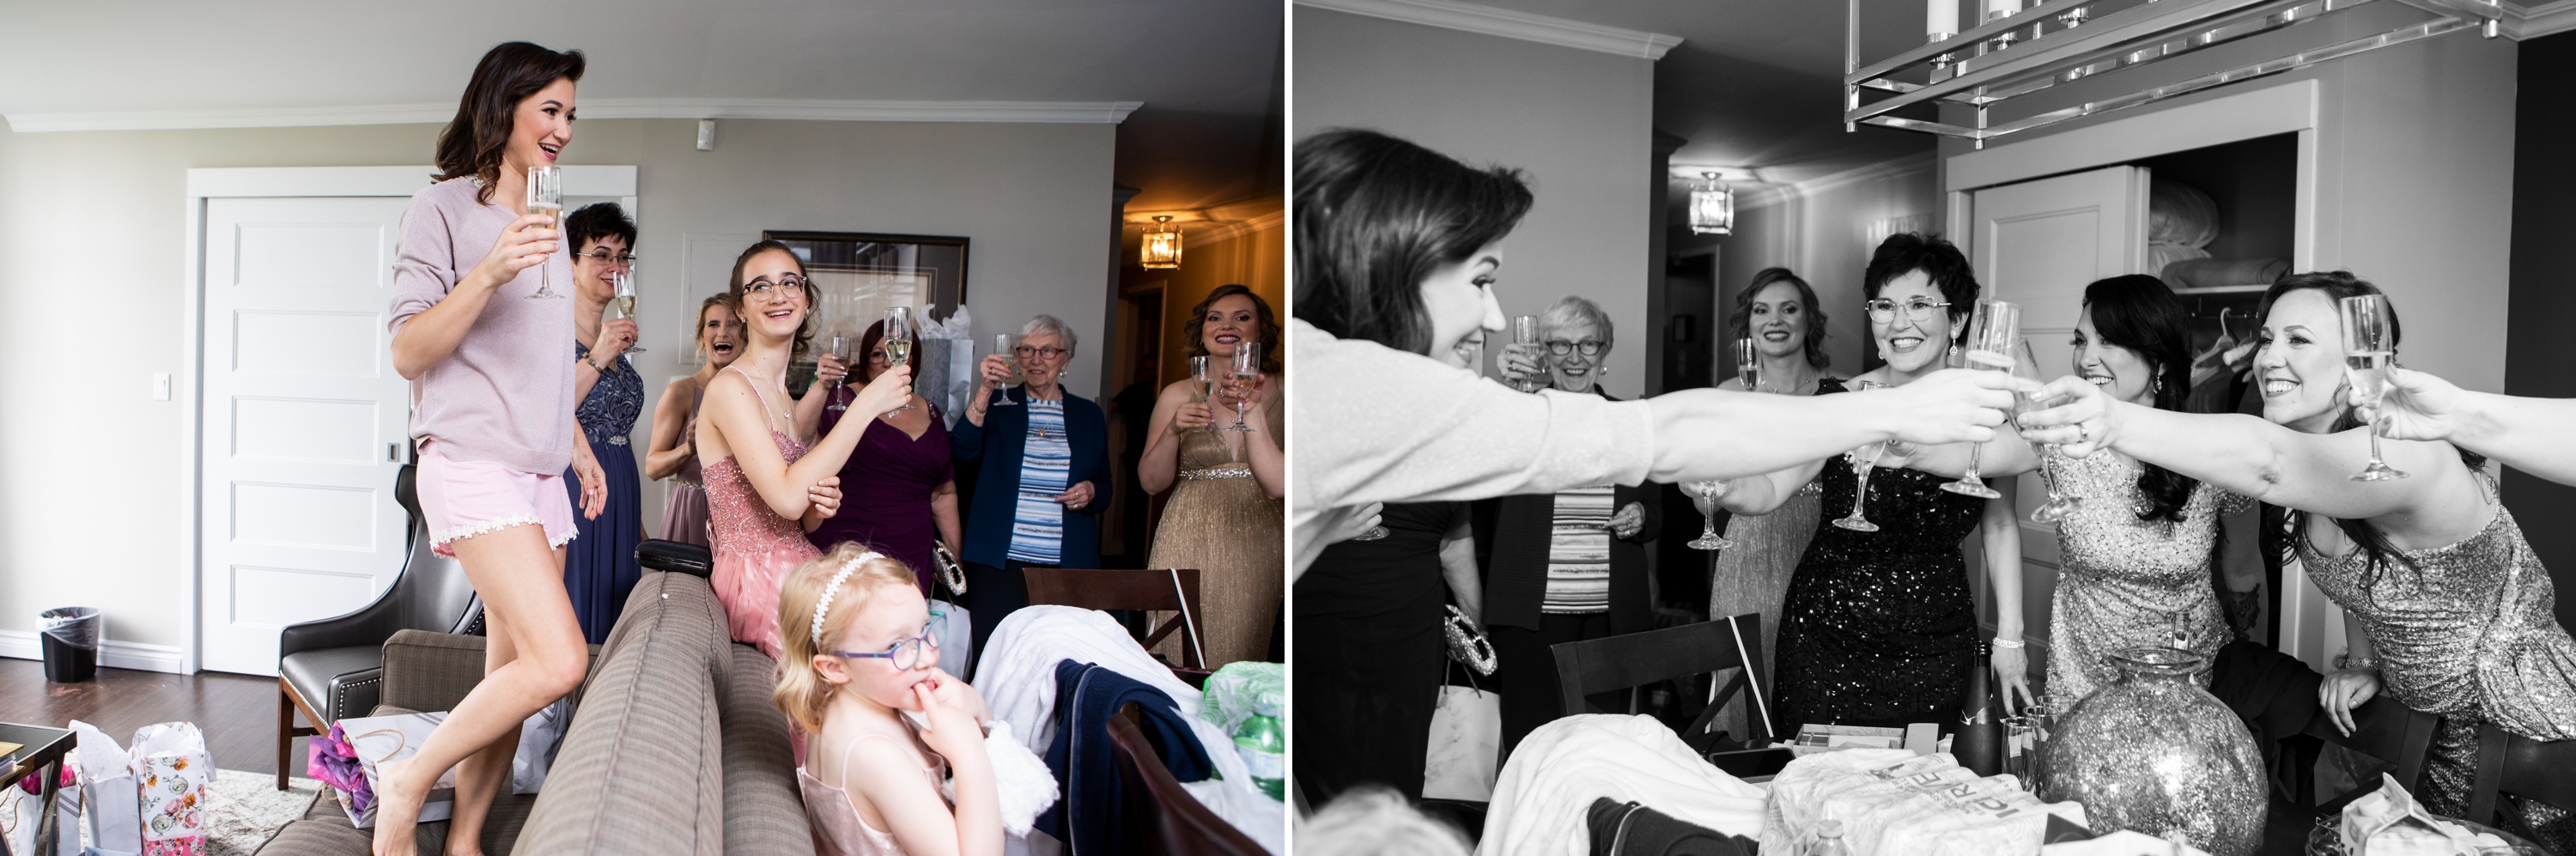 Cheers Bridal Party Josh Zsuzsi Pal Photography Wedding Elmhurst Inn Studio Lumen